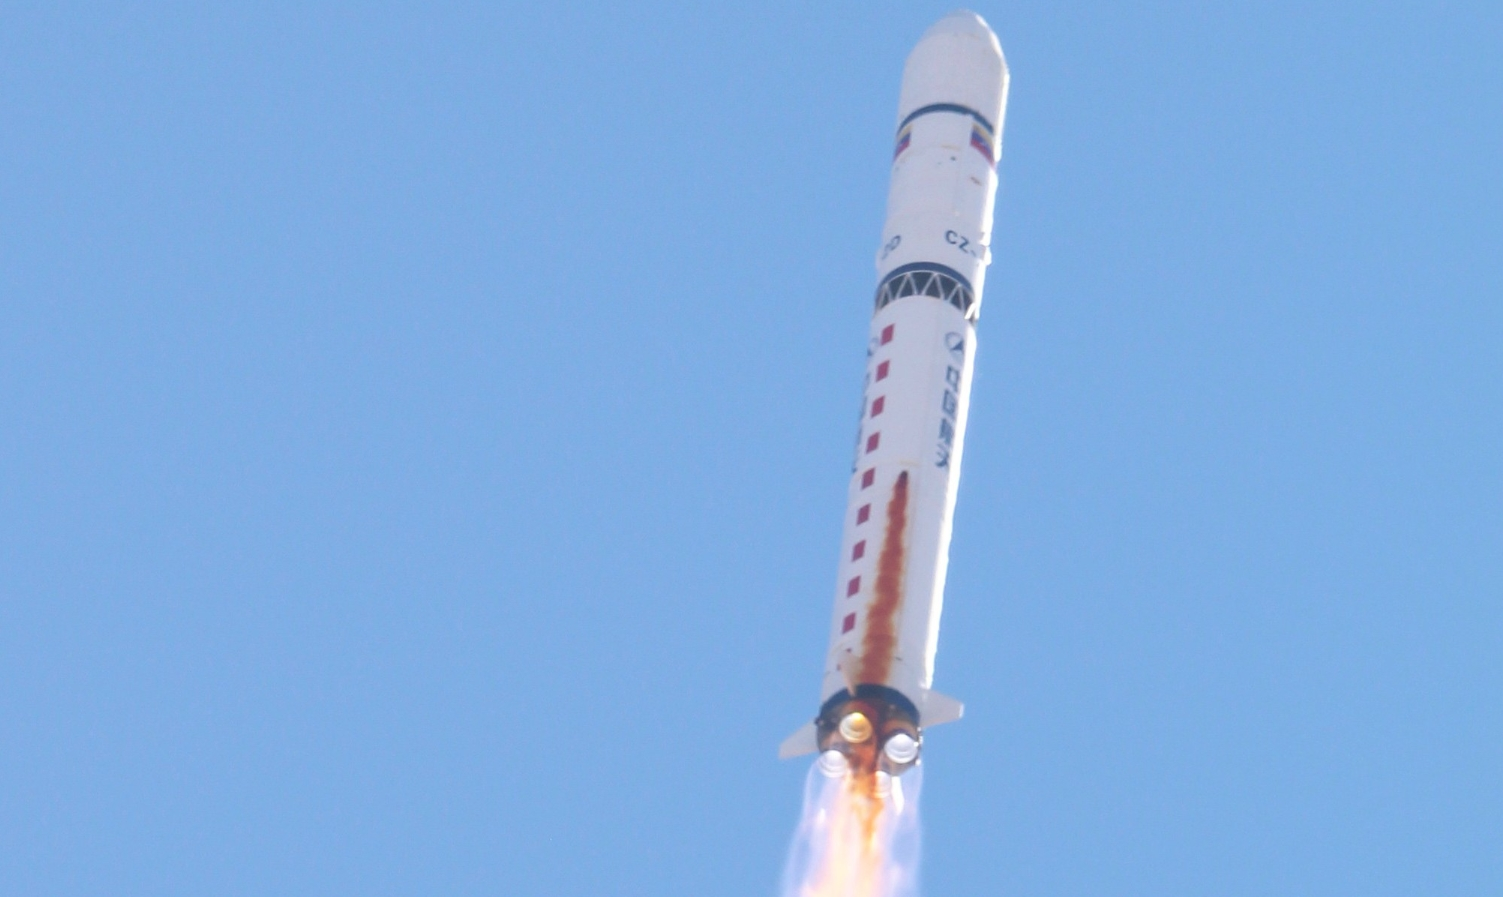 676423ab0ce44 The Long March-2D (LM-2D) launch vehicle is a two-stage rocket developed by  the Shanghai Academy of Spaceflight Technology. With storable propellants  is ...